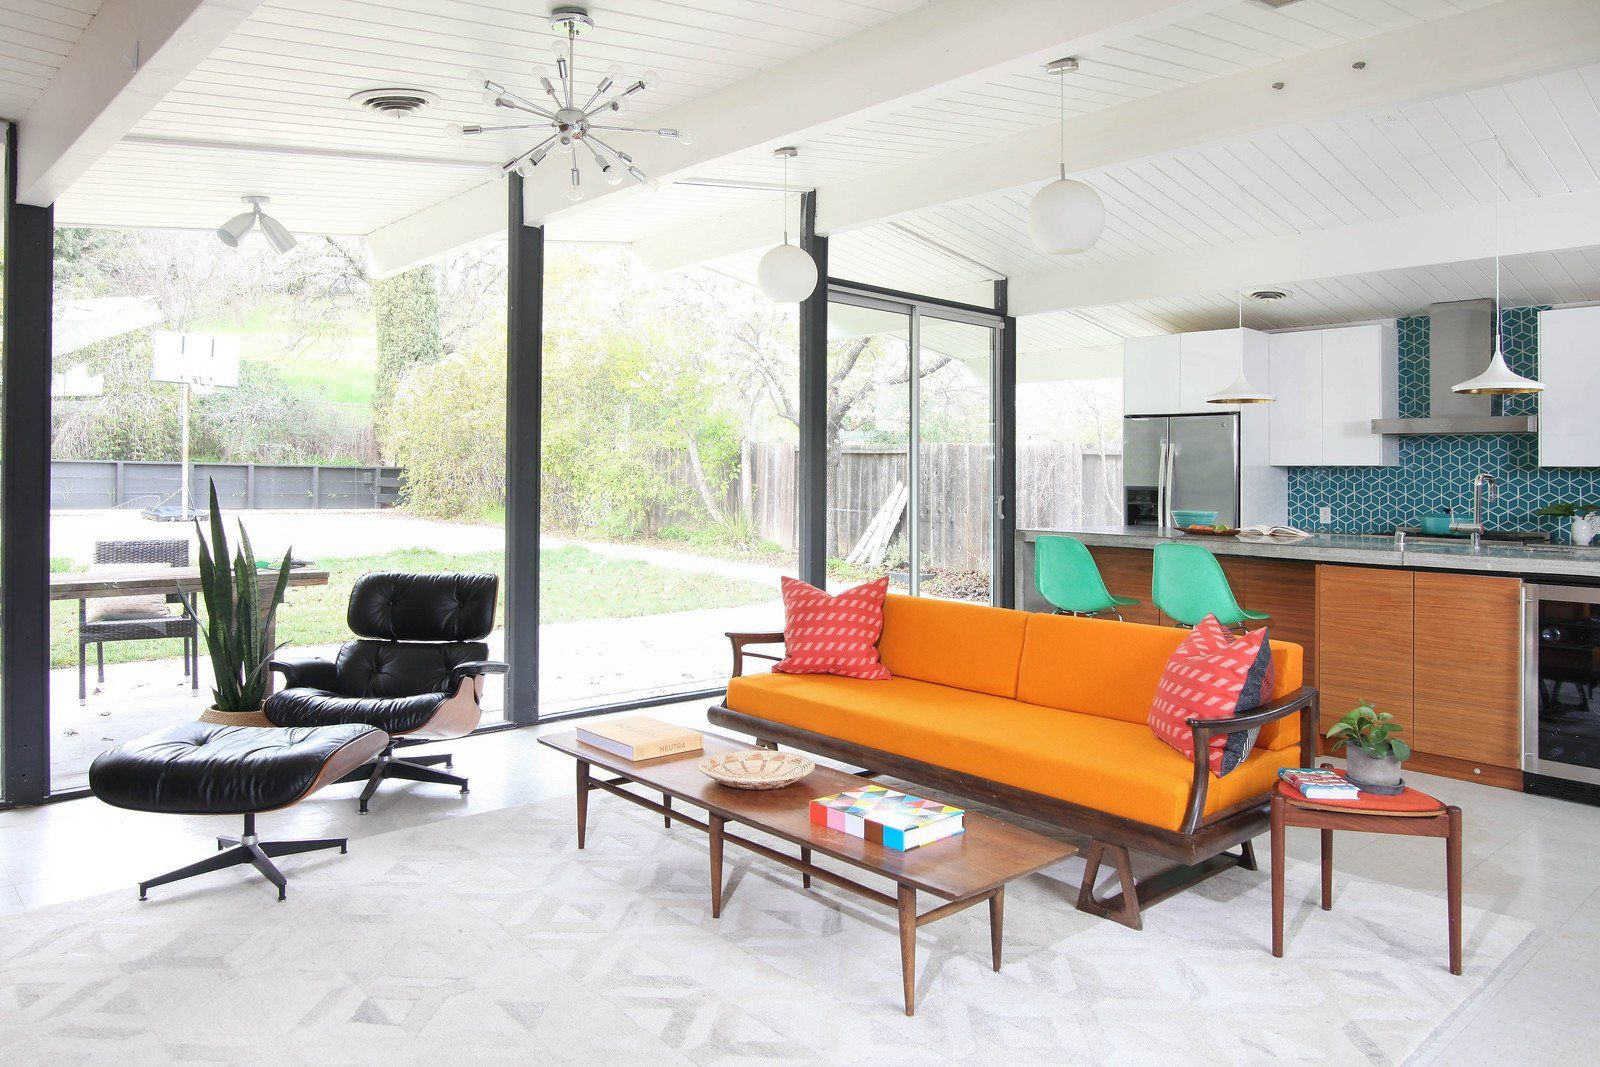 Modern home with living room sofa ceiling lighting end tables vinyl floor and chair vintage furniture collected through local estate sales and antique